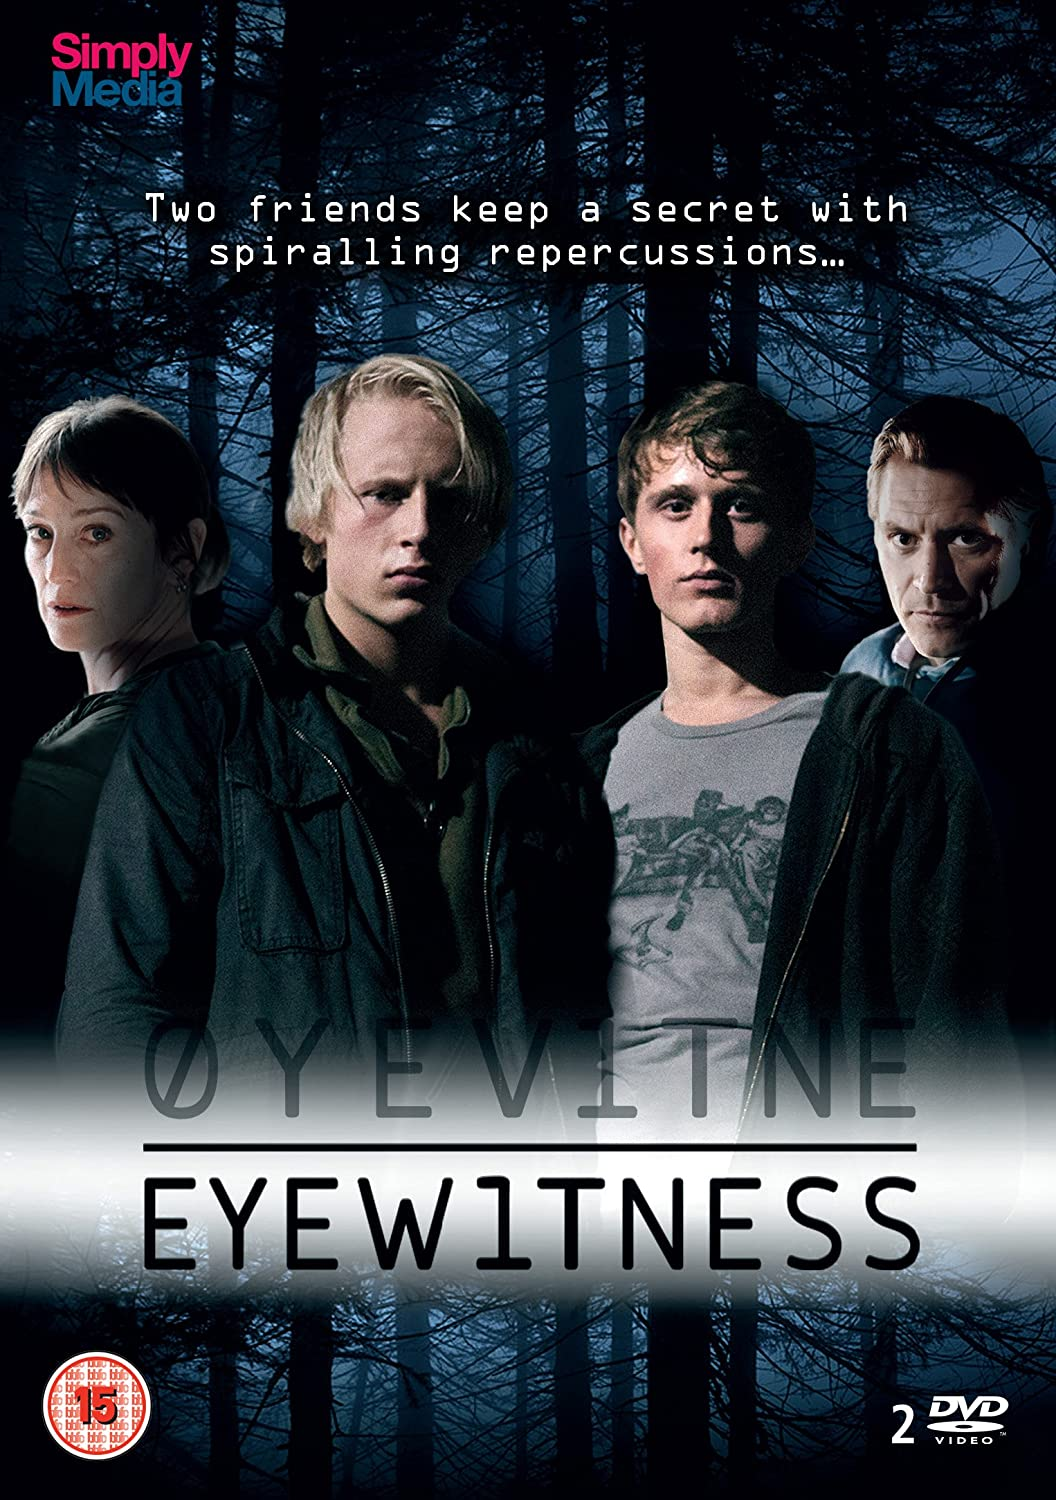 Eyewitness (UK link)